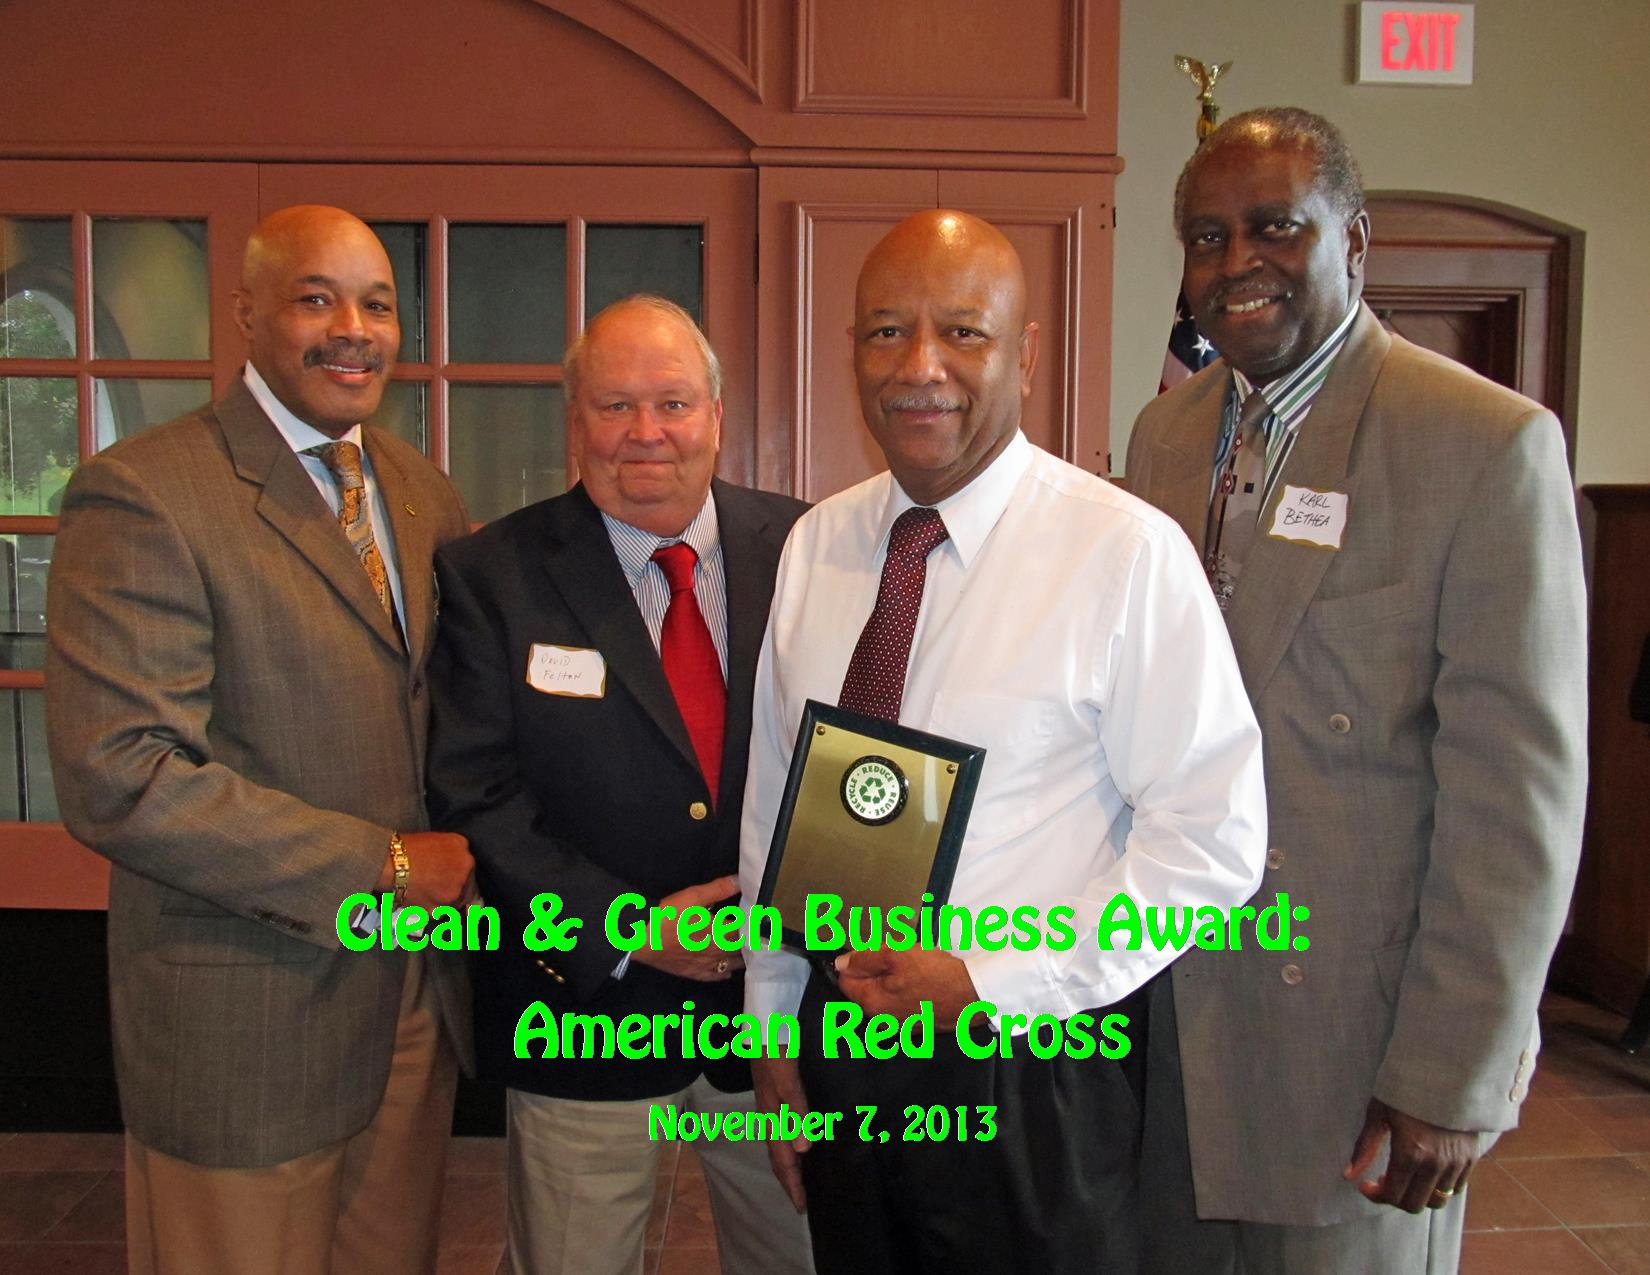 11-7-13 Clean Business Award American Red Cross